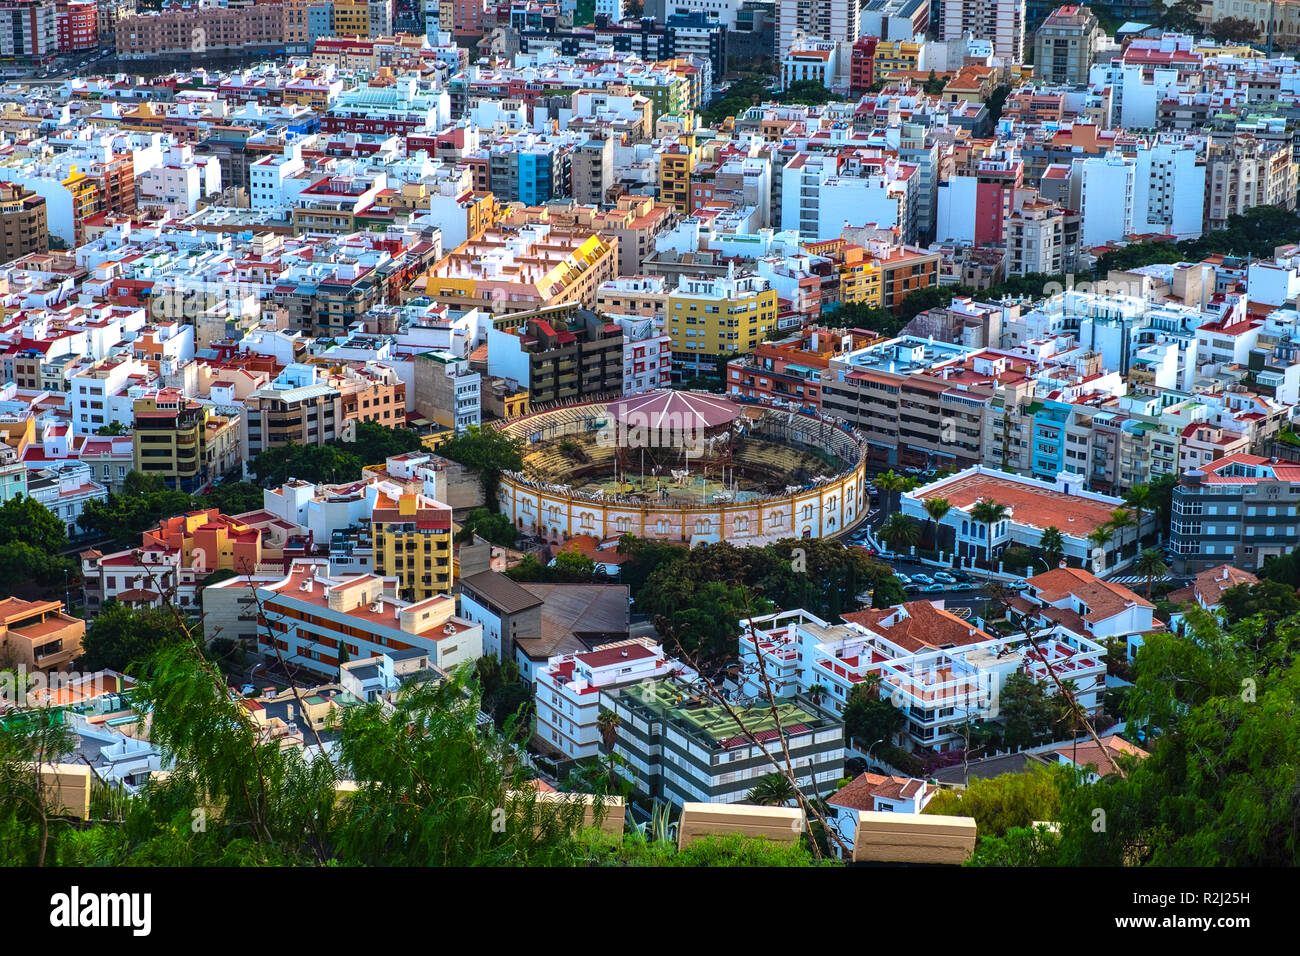 From Los Campitos is about 10 minutes walk to the Mirador (viewpoint) To Guapo. From there you can see perfectly in the city center of Santa Cruz. Goo - Stock Image